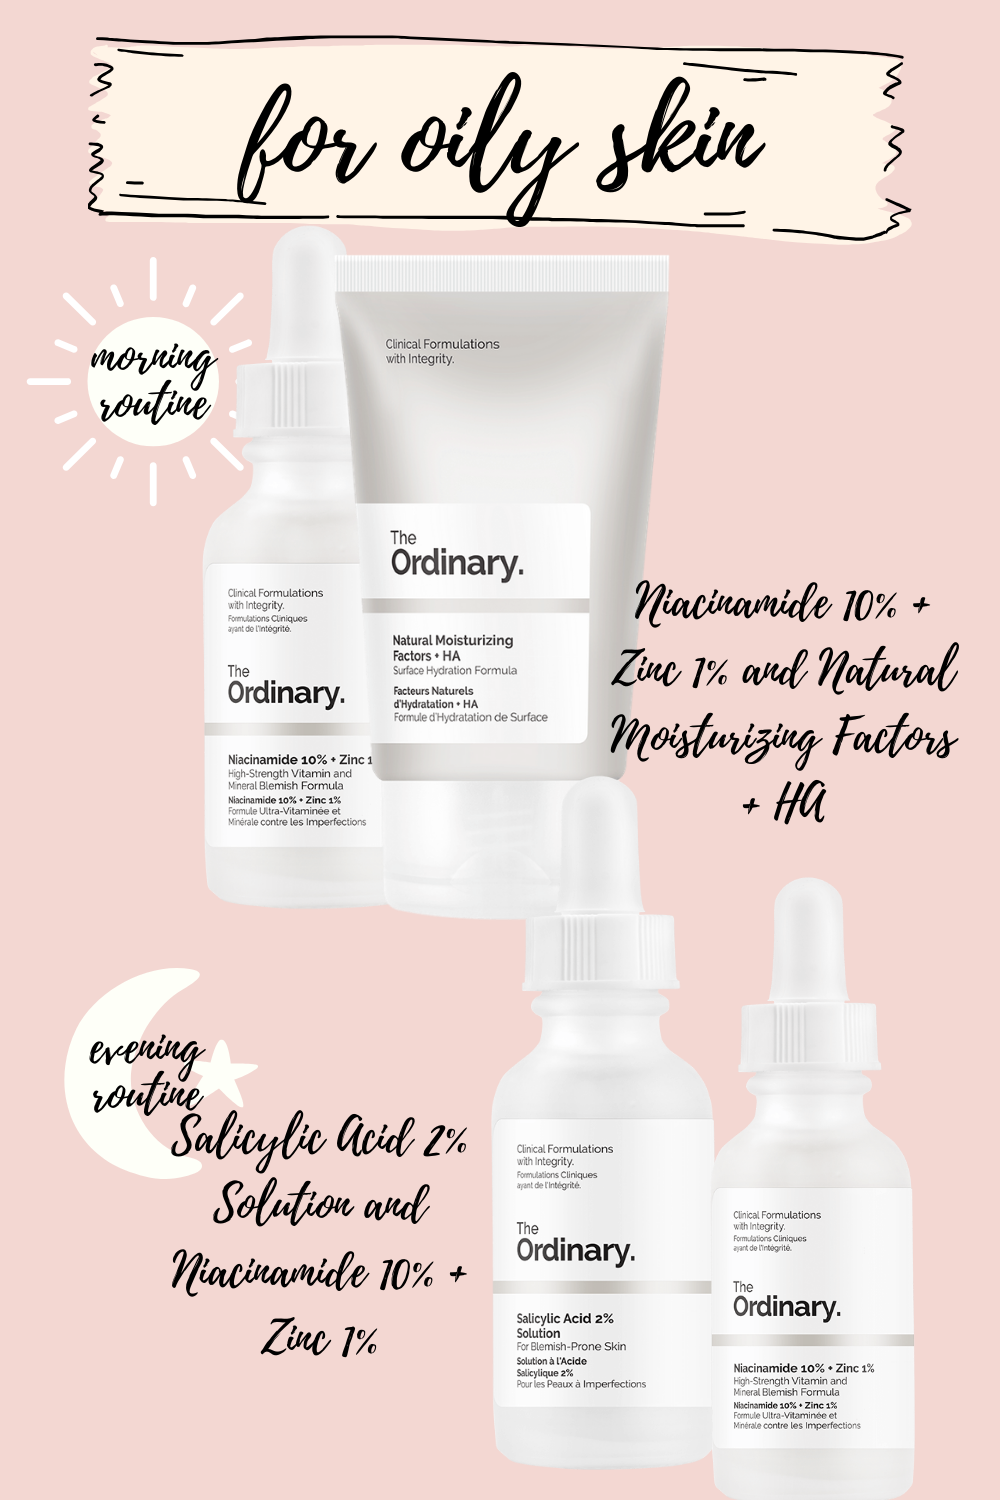 the ordinary skincare routine for oily skin